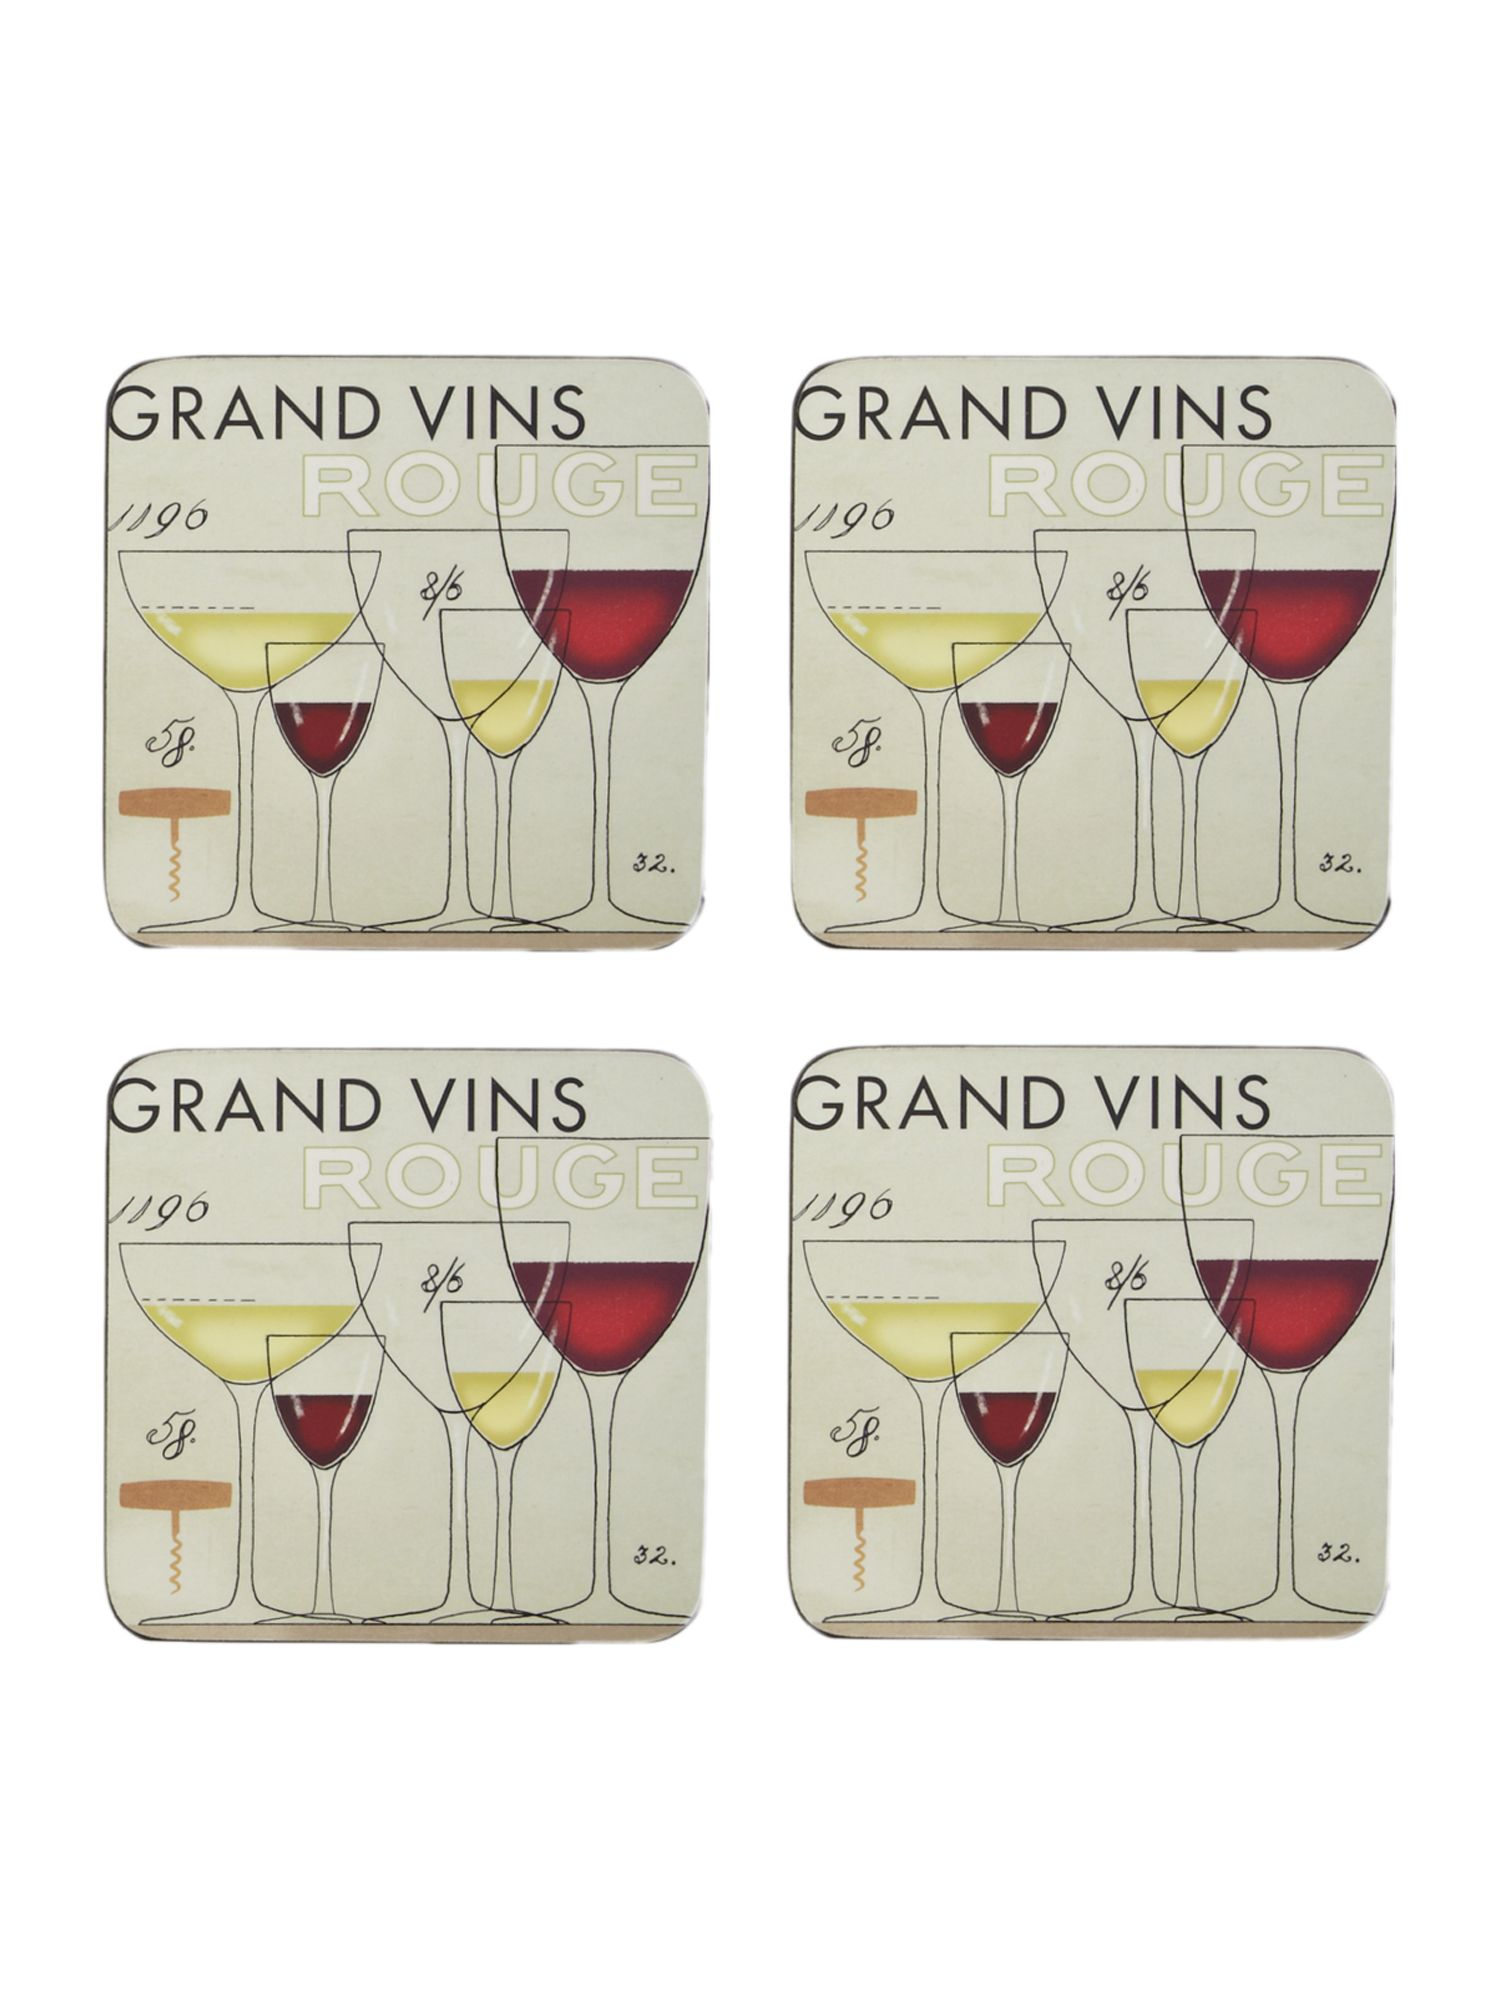 Grand vin coasters set of 4